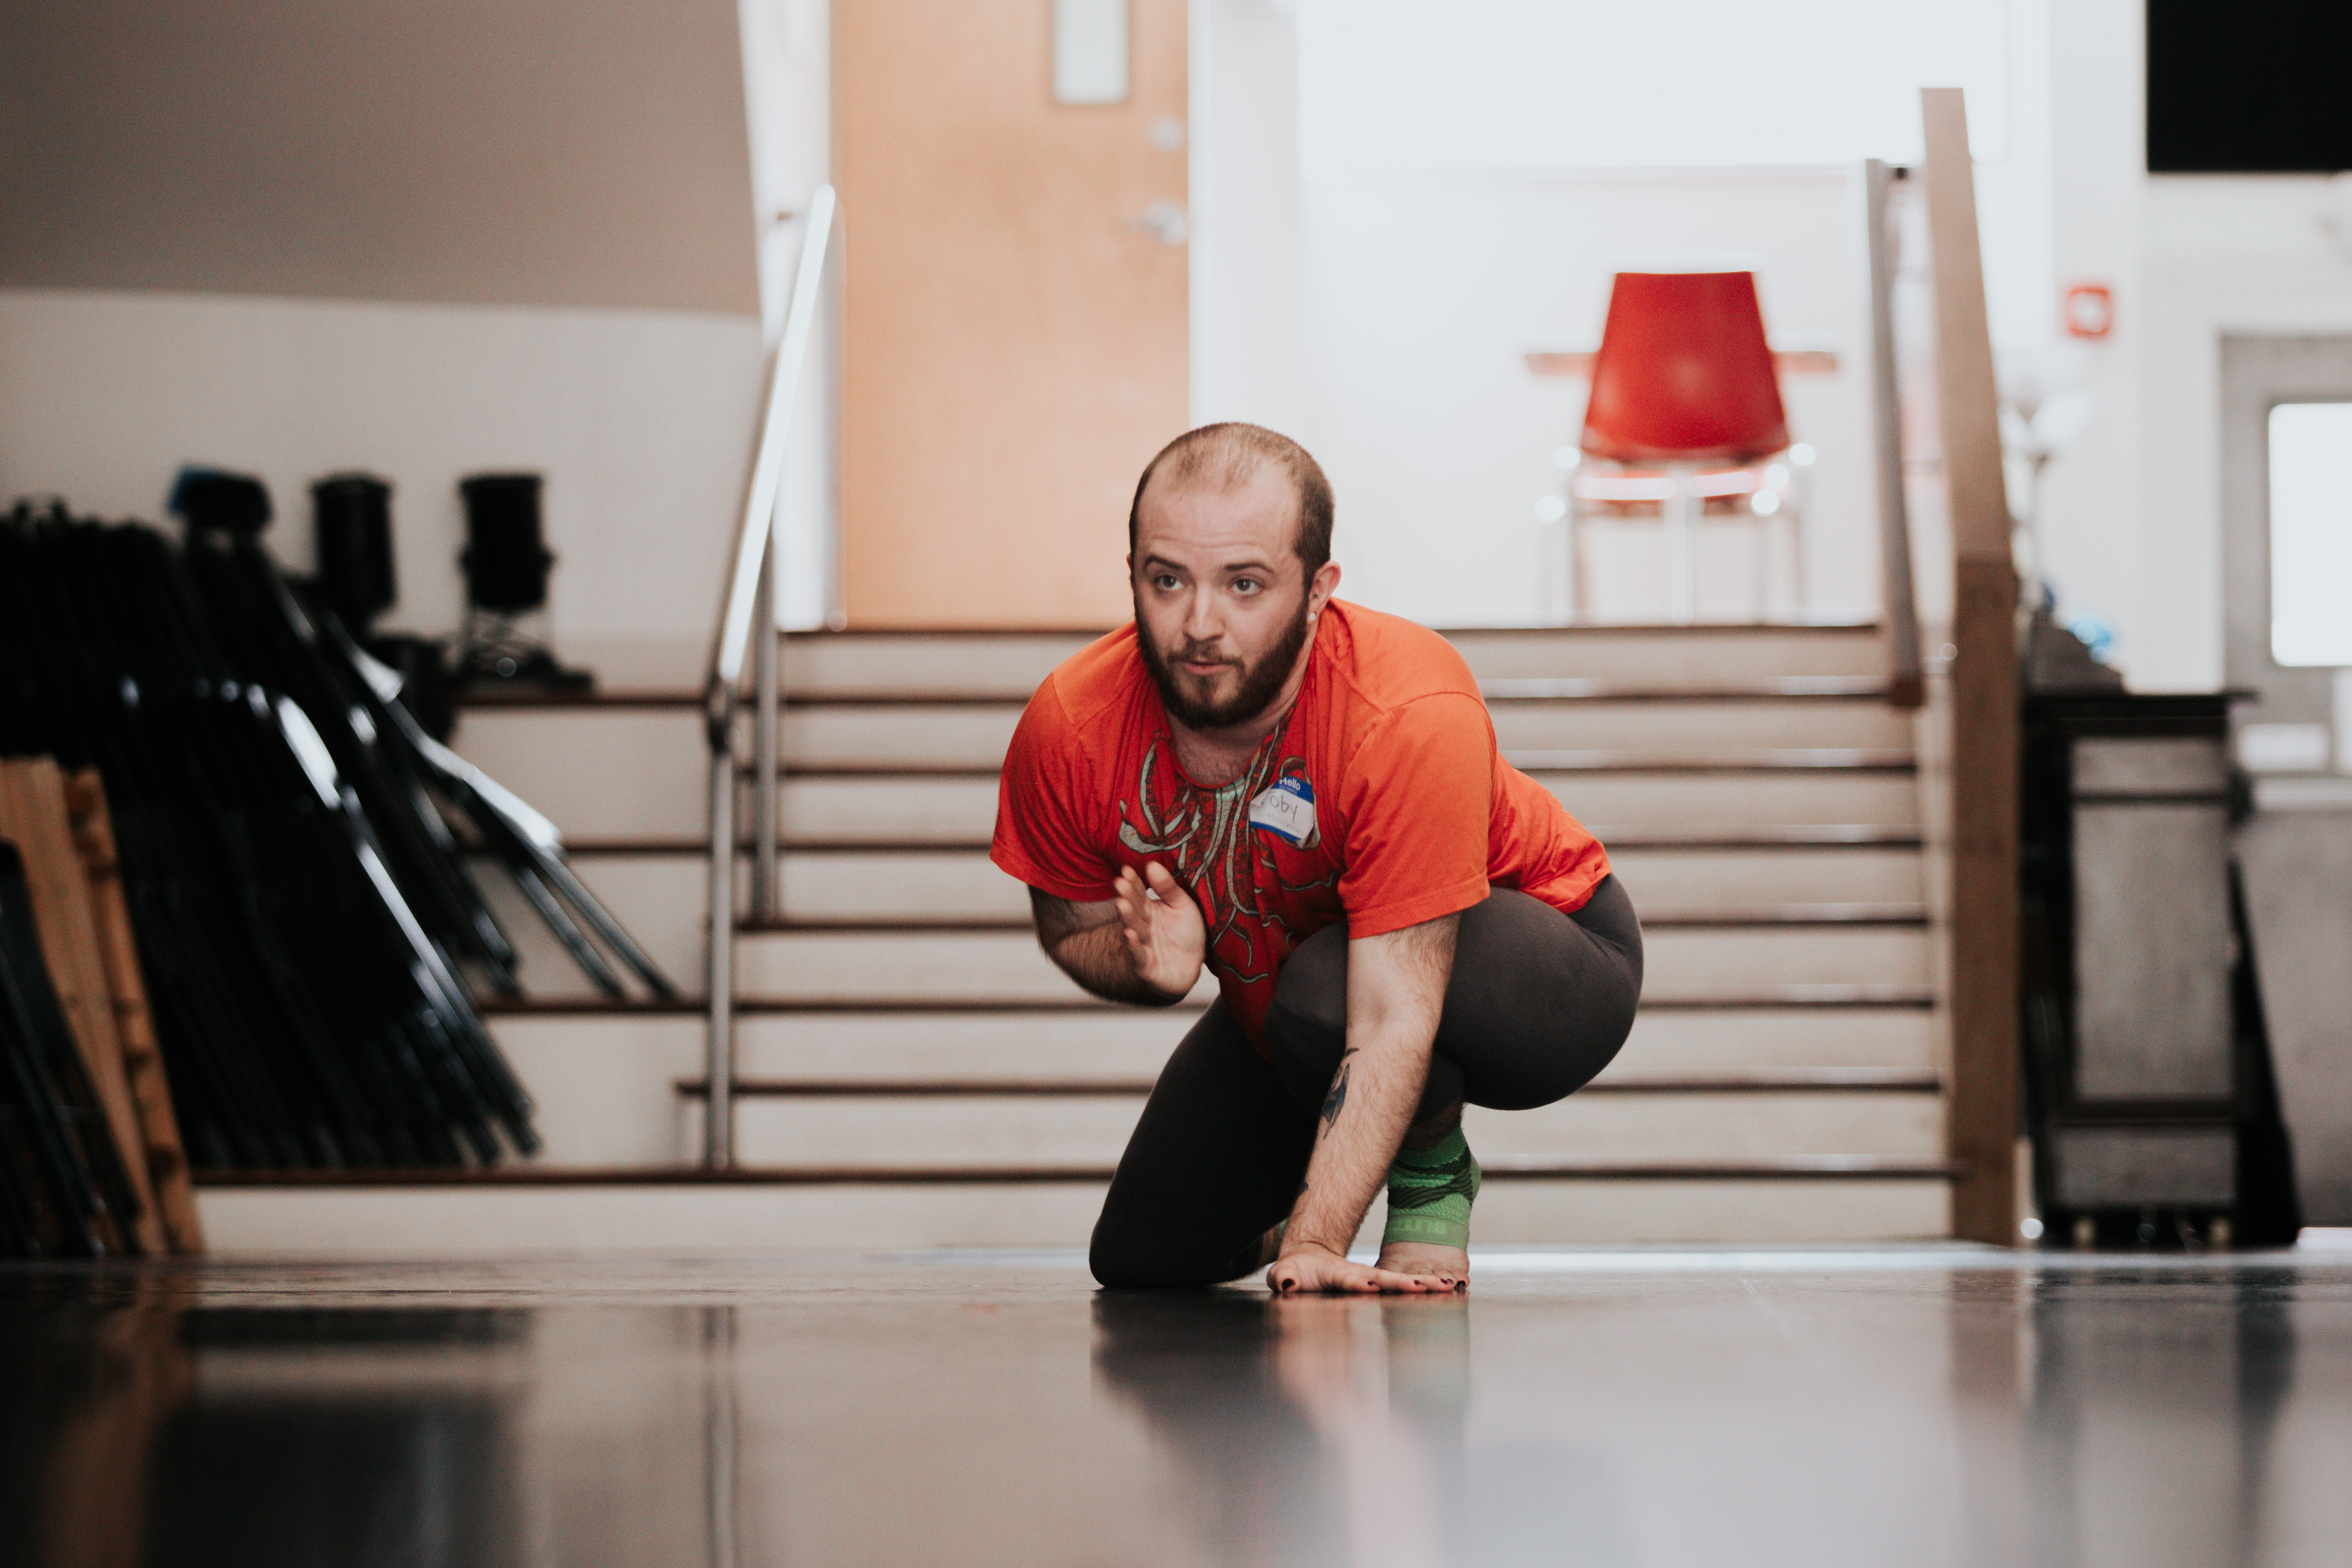 Person crouching low with one hand pointing forward. Orange t-shirt. Black pants. Stairs behind their body.